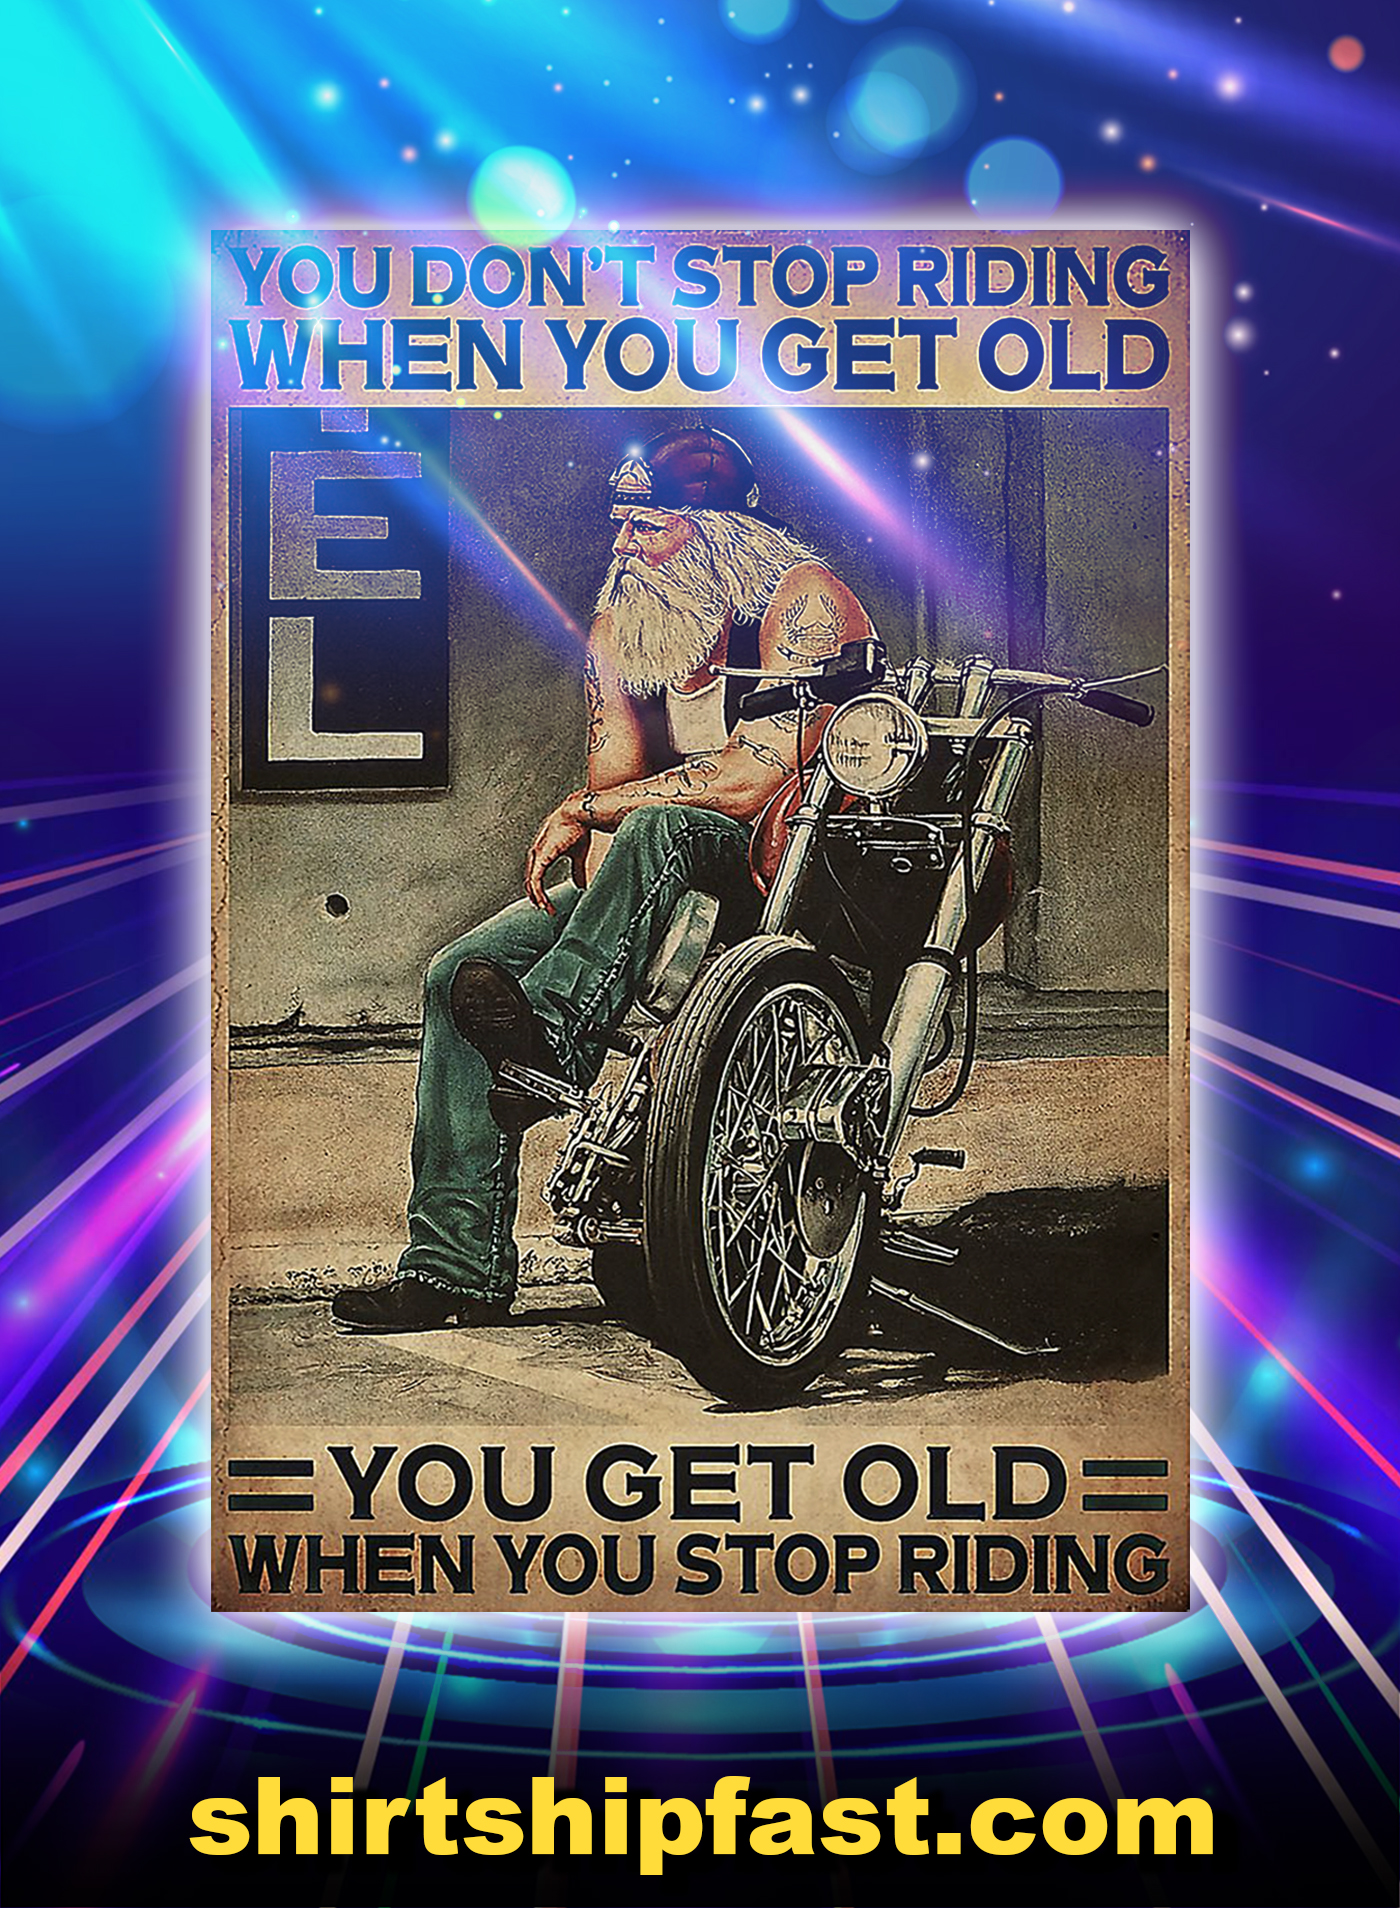 Old biker Motorcycle you don't stop riding poster - A1